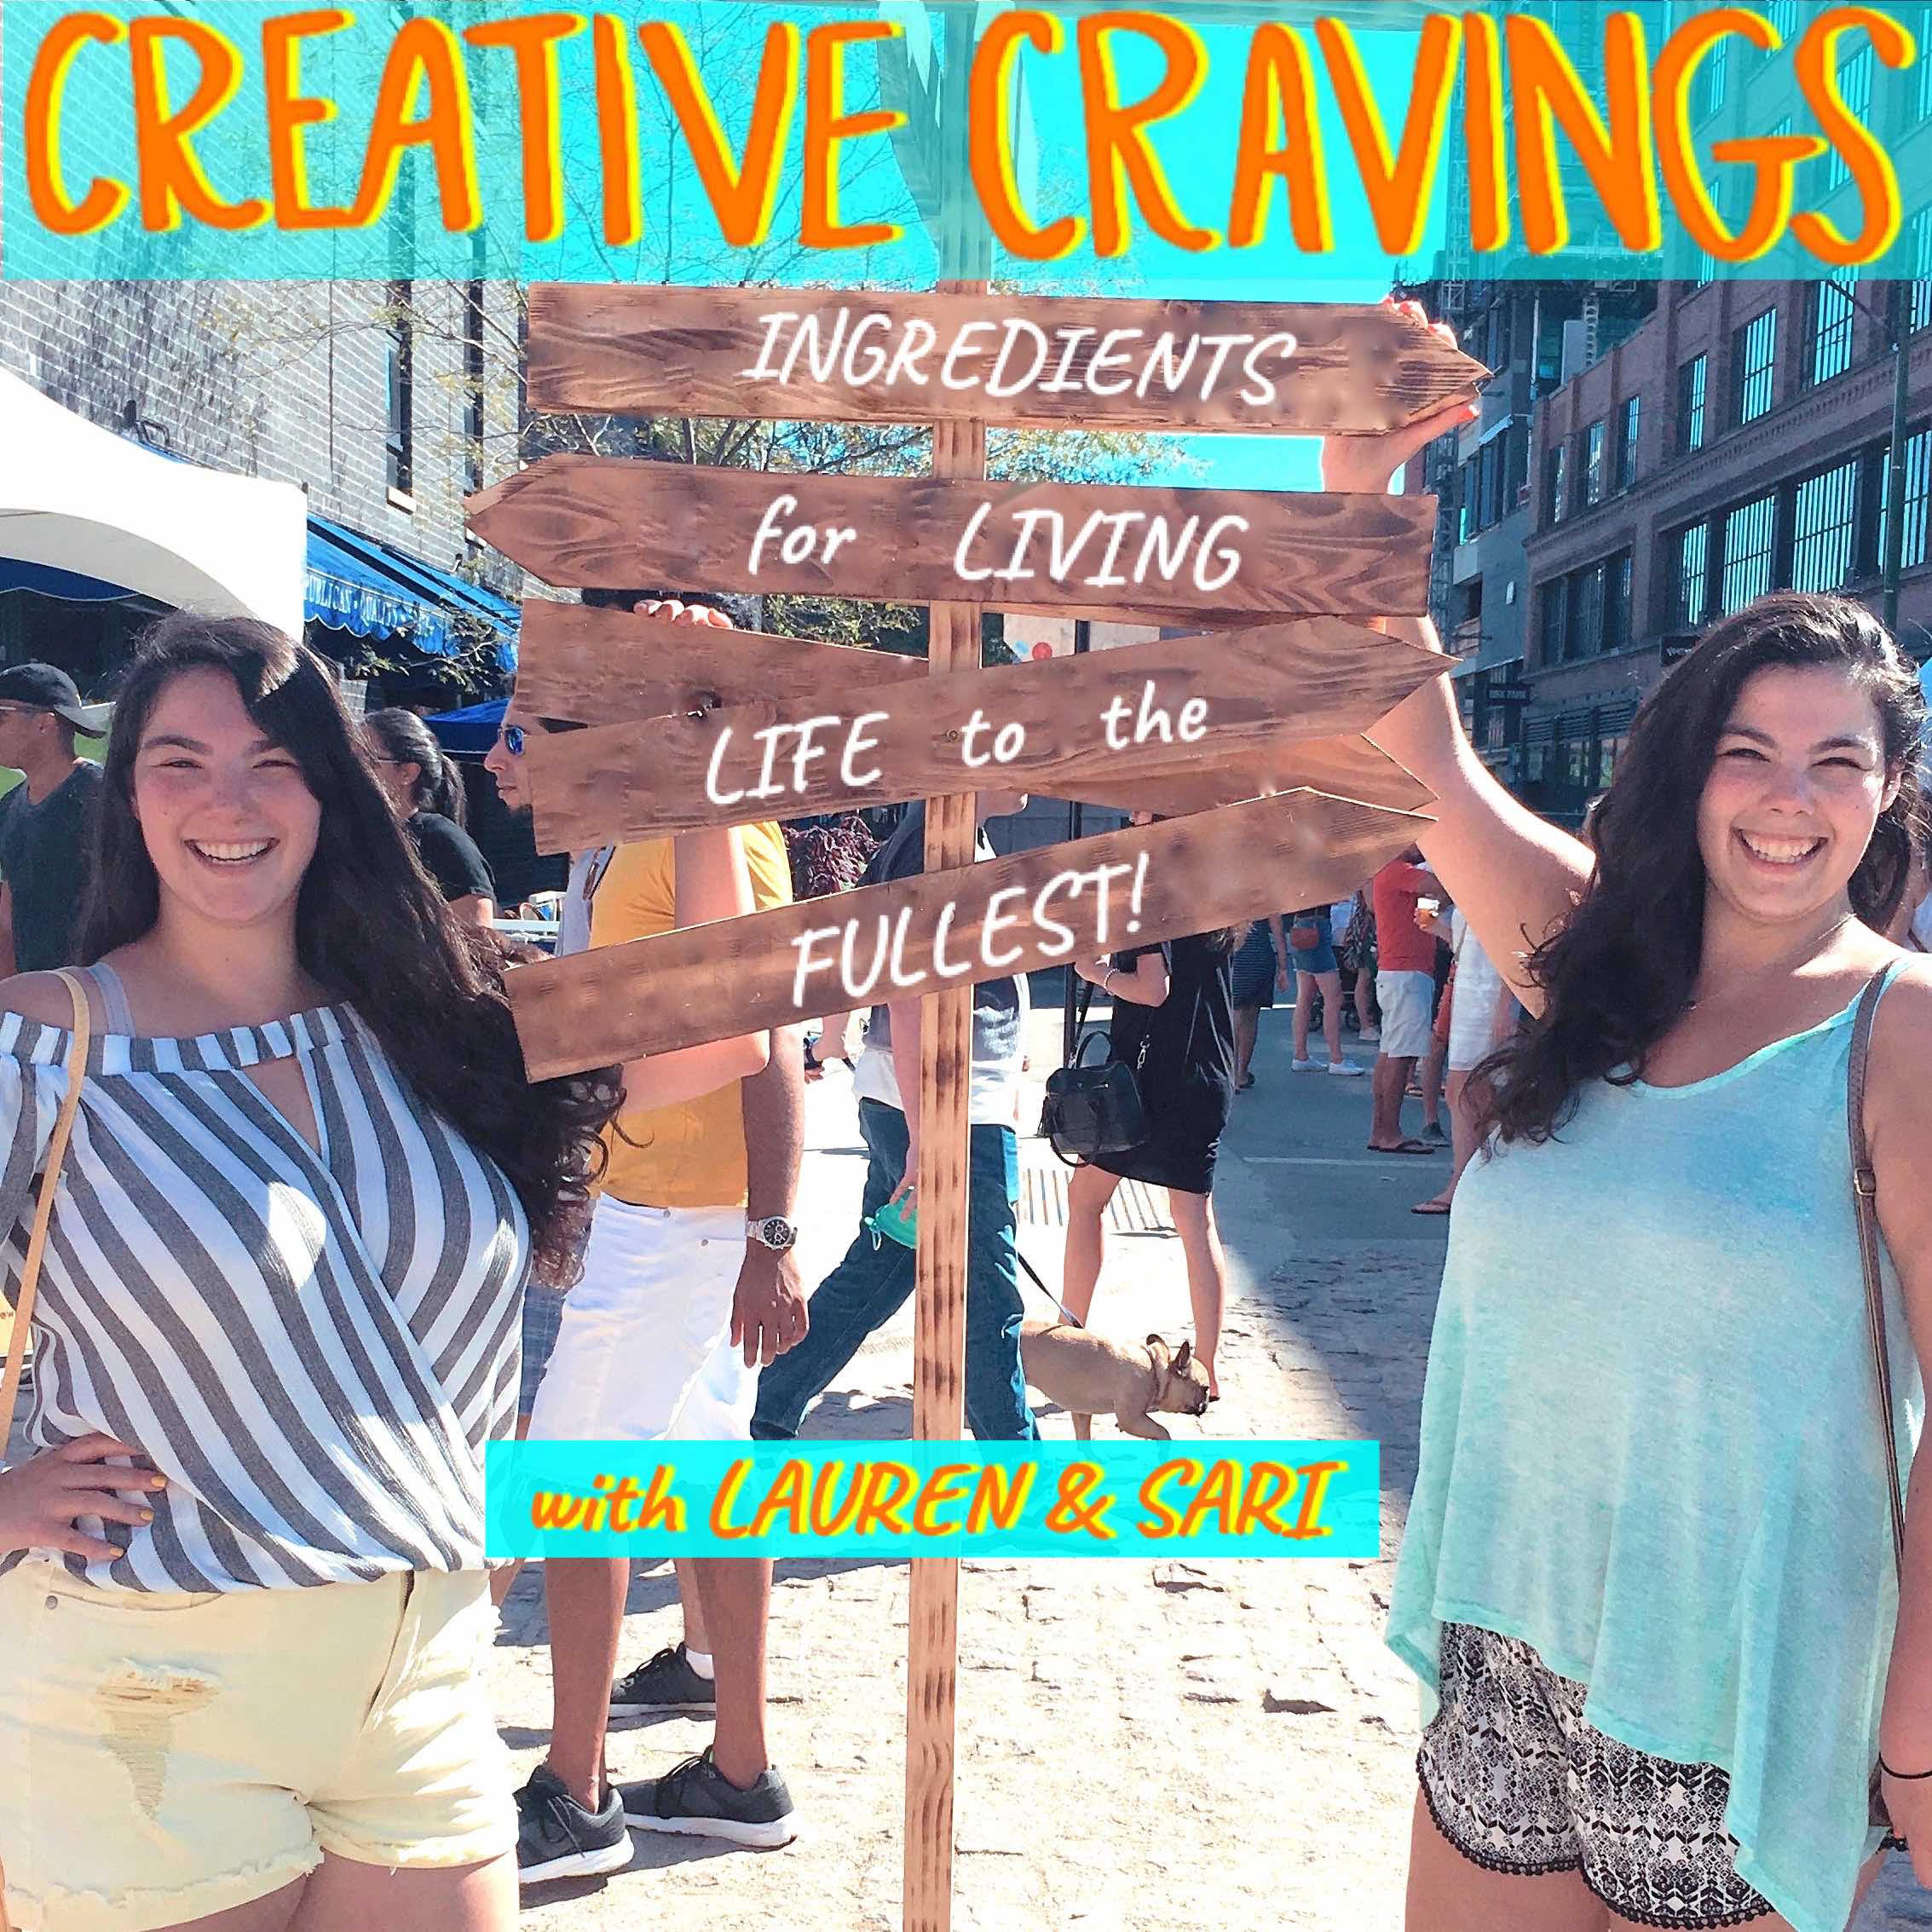 Ep 5: Are You a Human Being, Or A Human Doing?   with Sari Feingold and Lauren Feingold, @creative.cravings   3.25.19